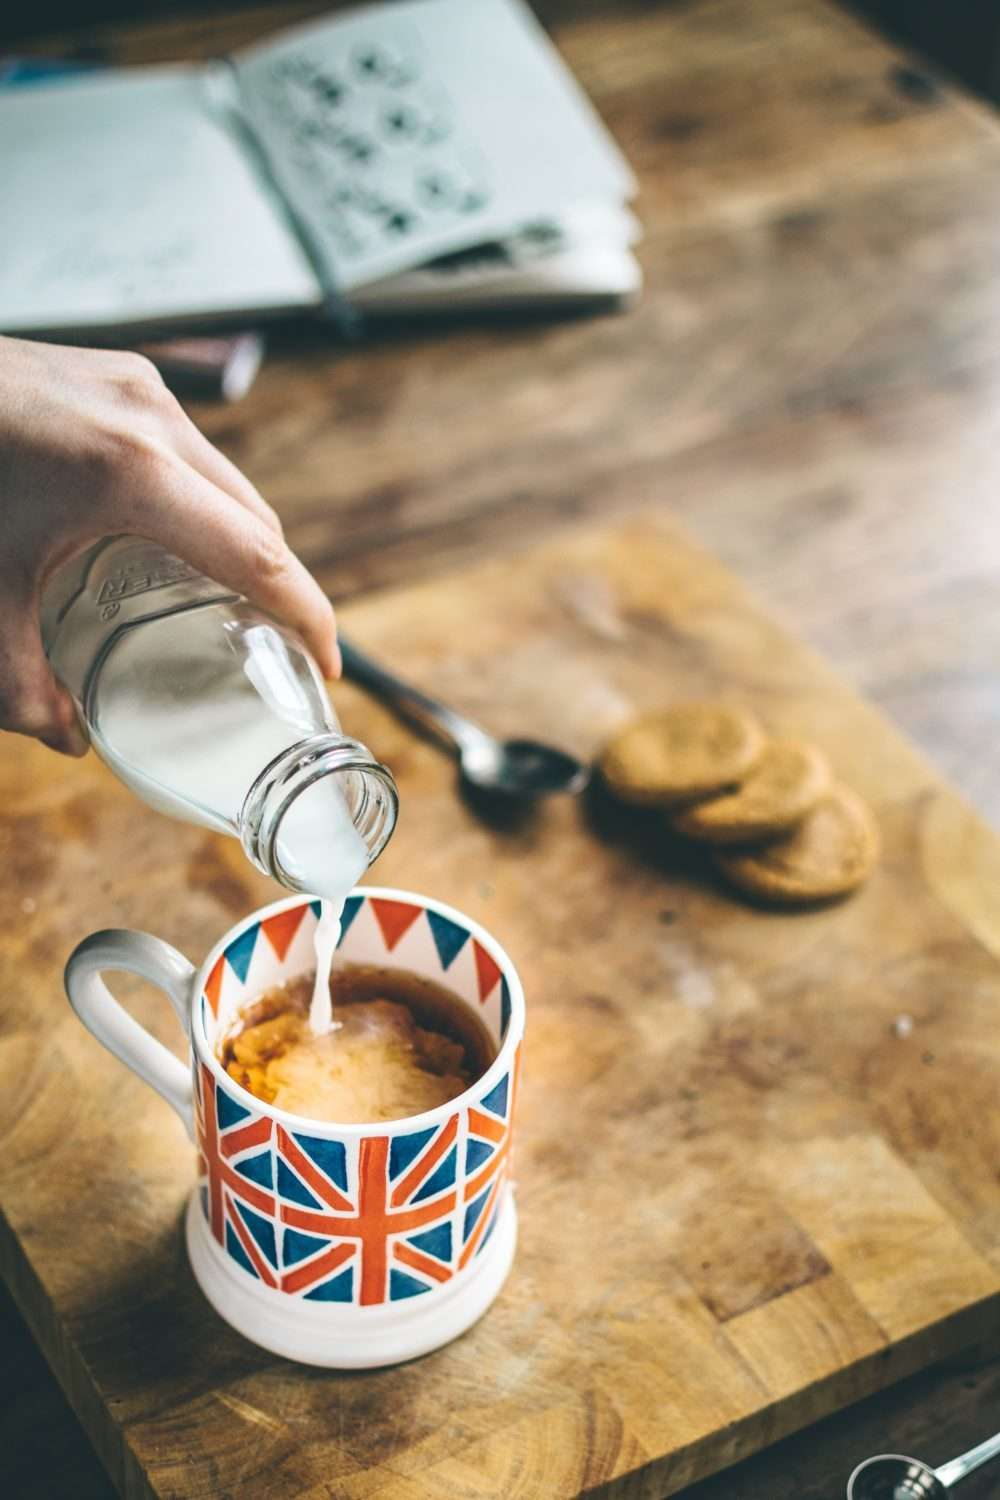 Tea And Cycling – A Perfect British Combination - Photo of pouring milk into a mug printed with the British flag that contains dark liquid